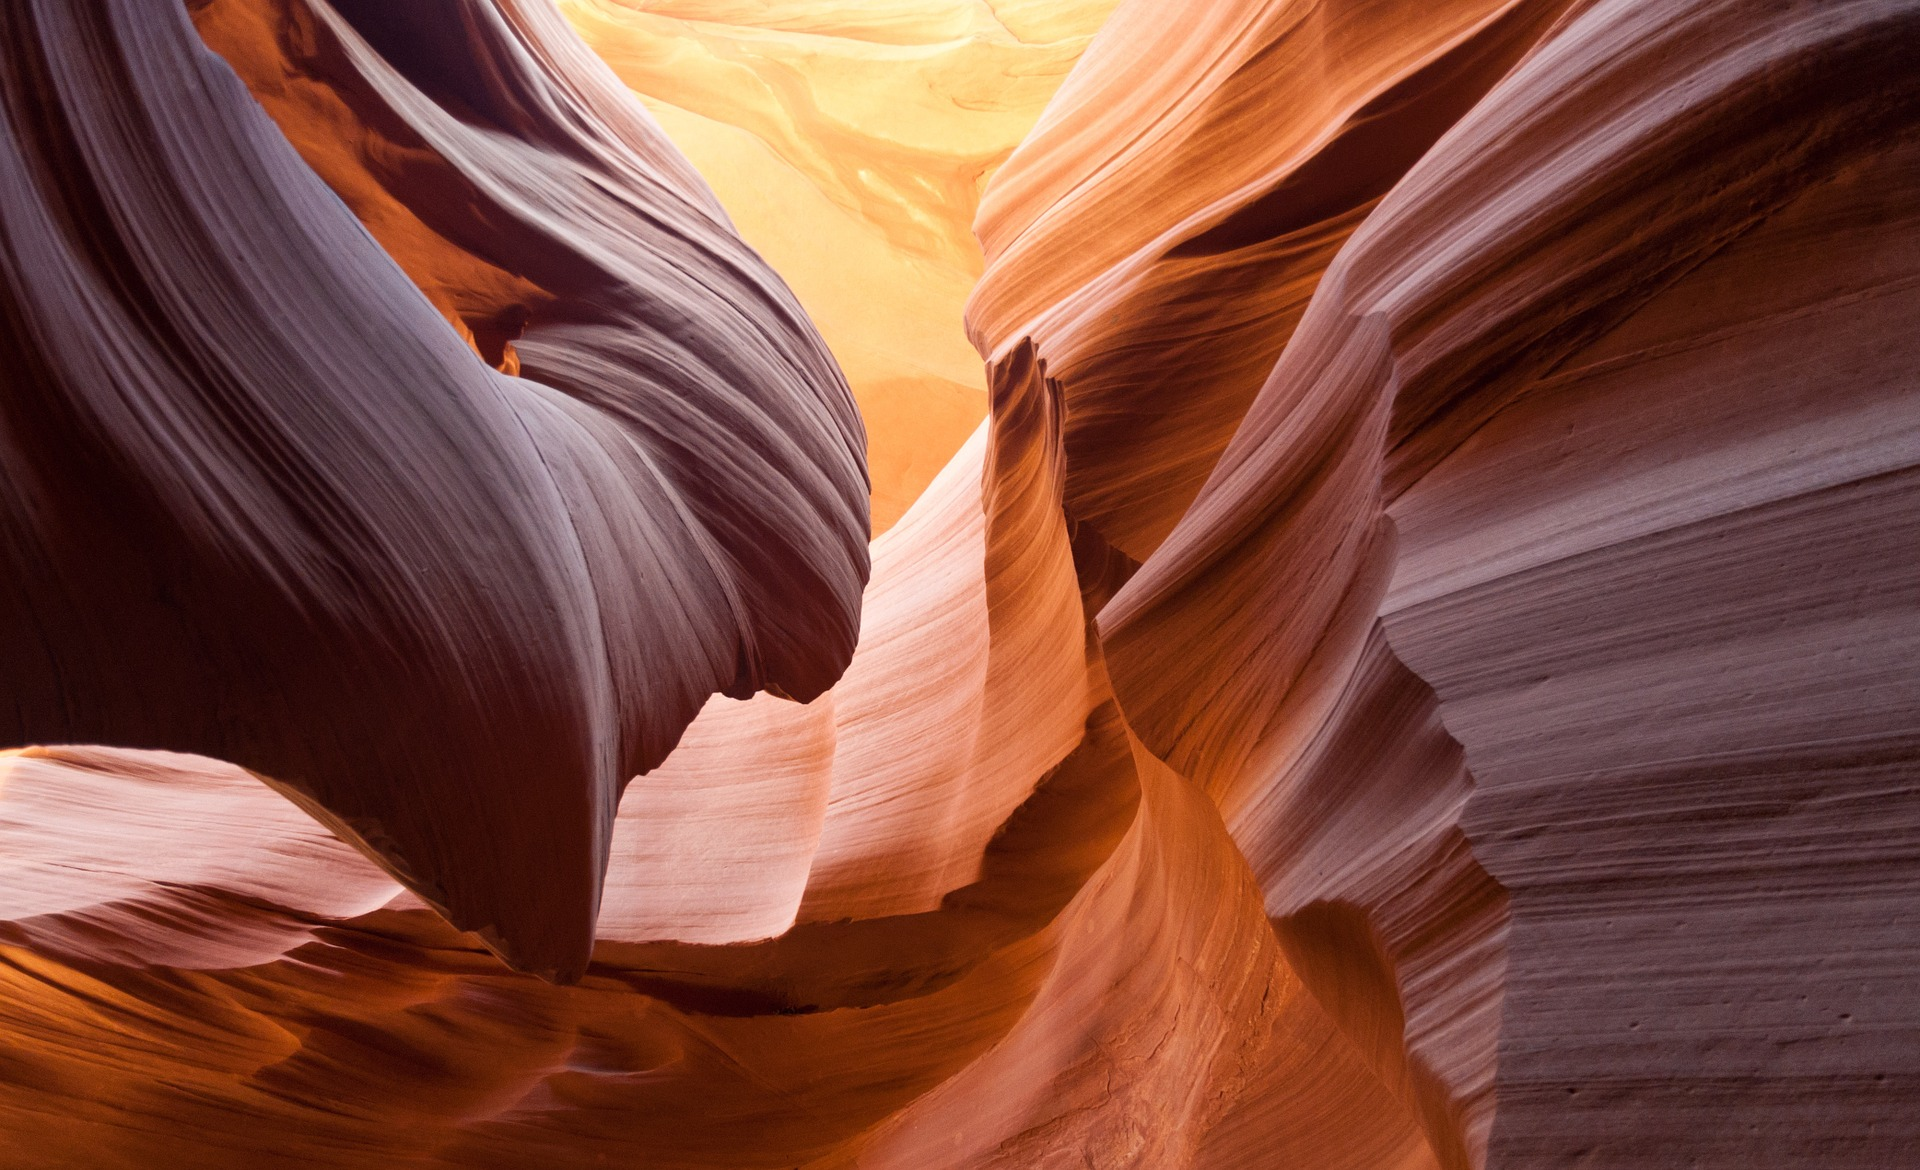 Destinos Custo Benefício: Curvas sinuosas do Antelope Canyon no Arizona, Estados Unidos